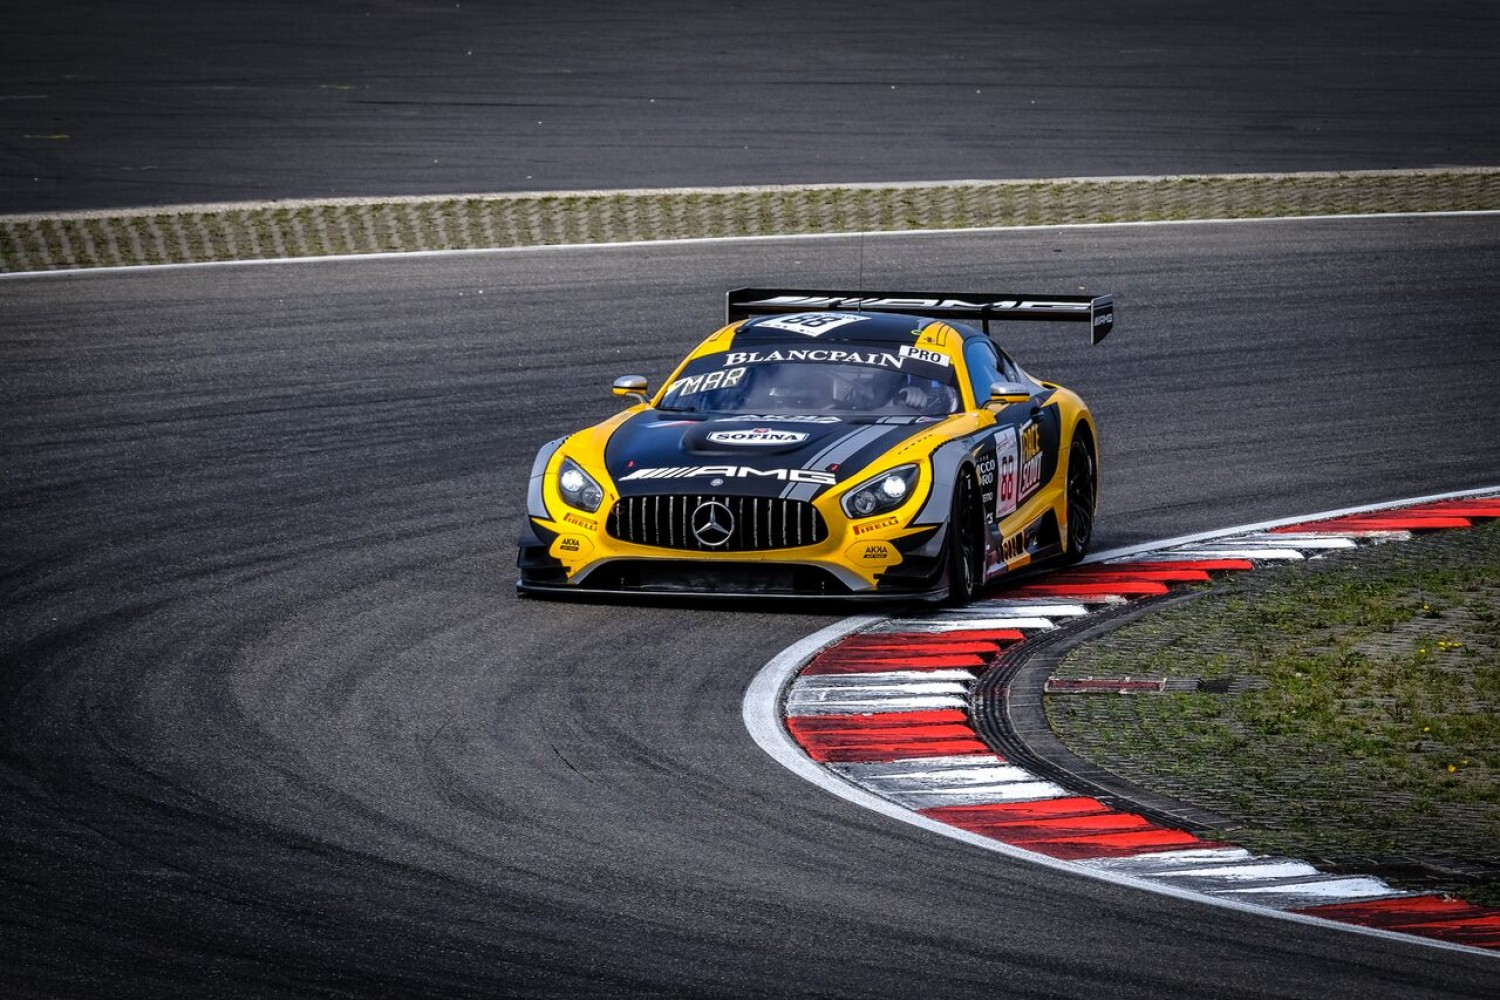 AKKA ASP Mercedes-AMG strikes back in second practice